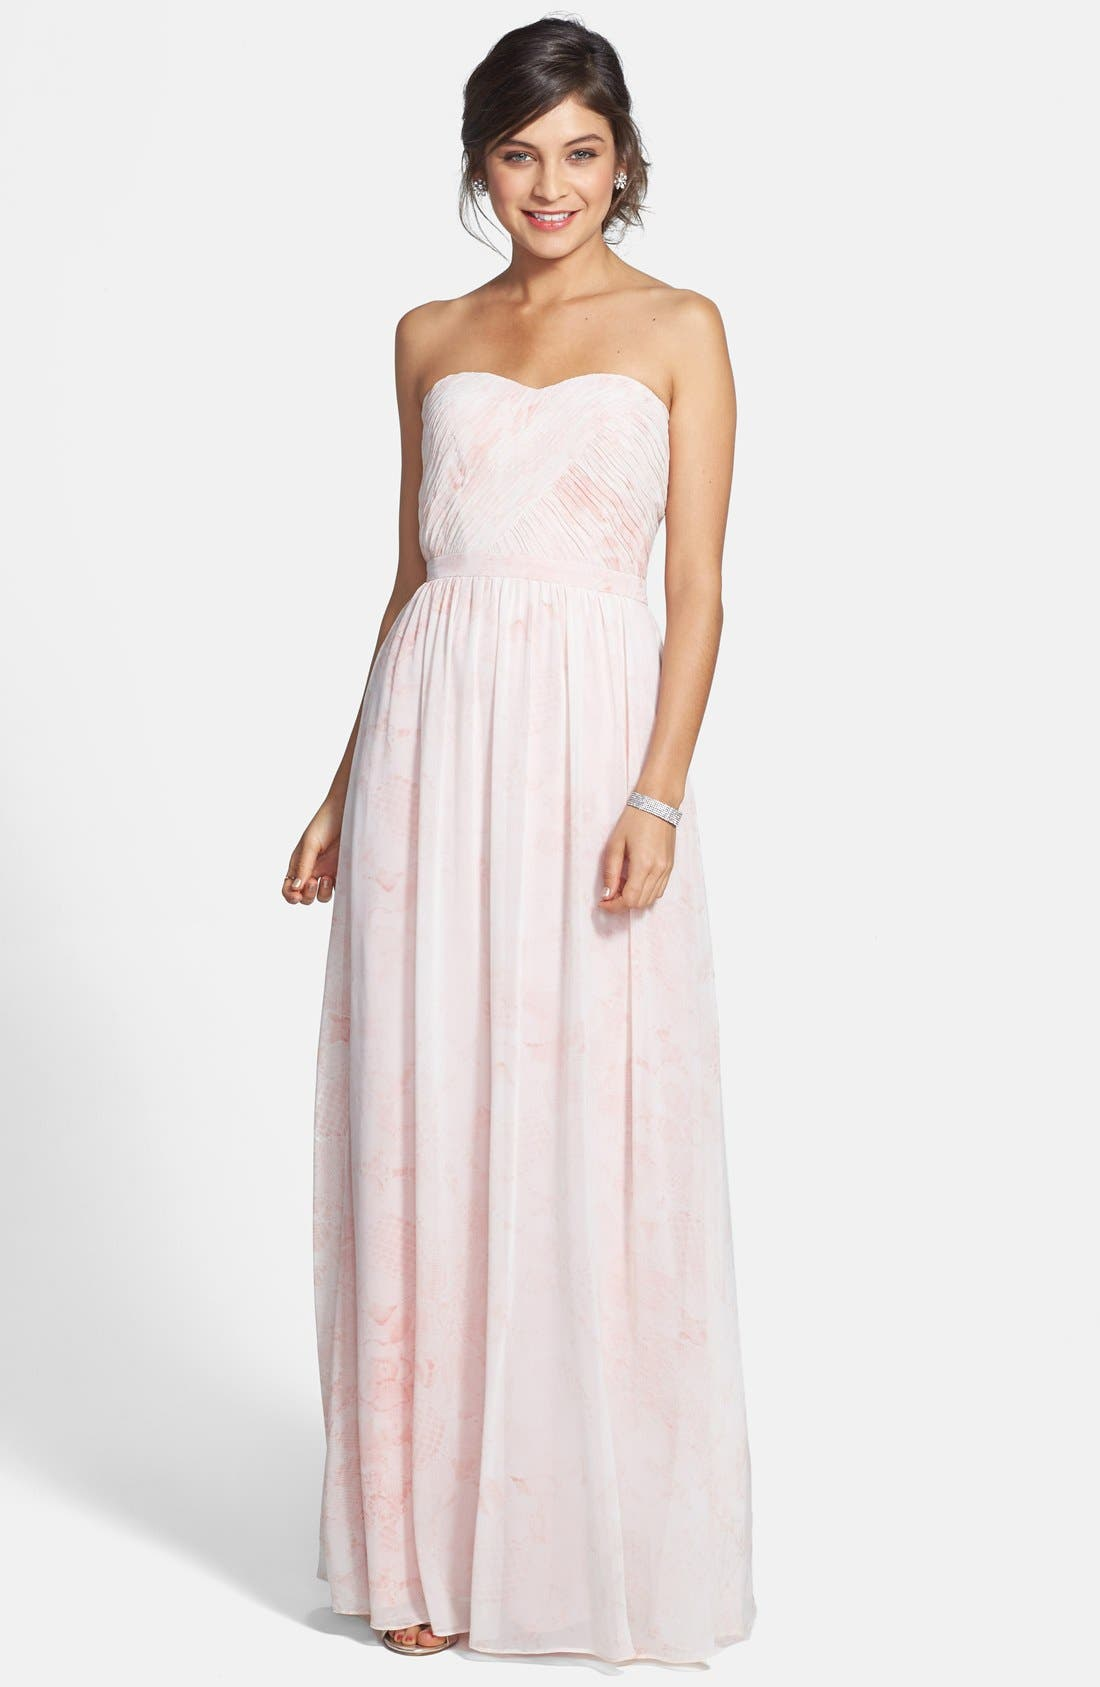 Main Image - ERIN erin fetherston 'Rose' Print Chiffon Strapless Gown